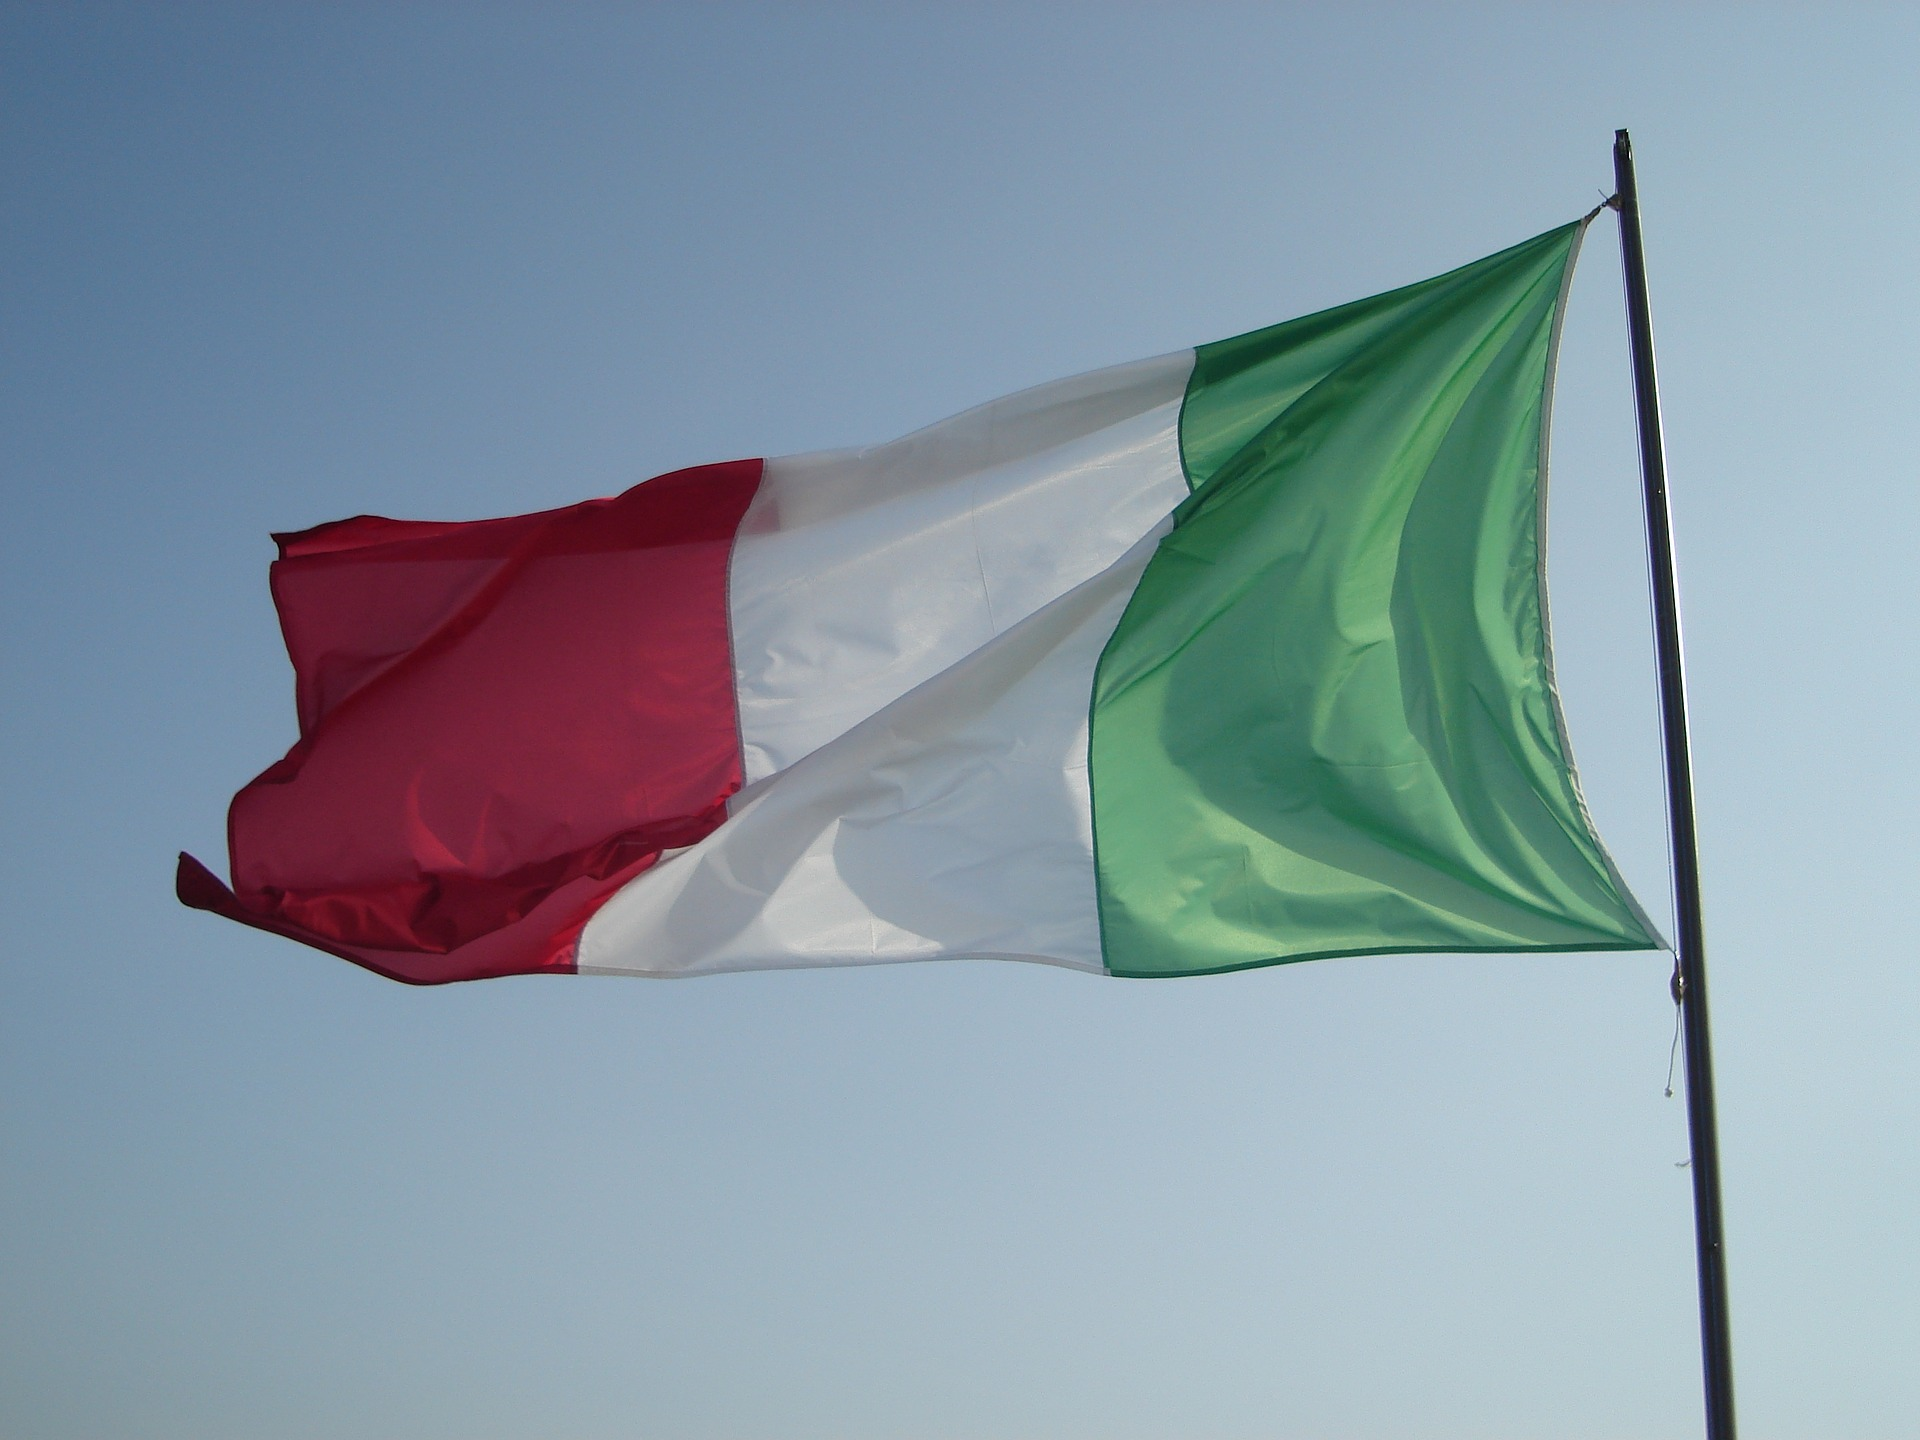 Italy Earthquake: Two Tragedies